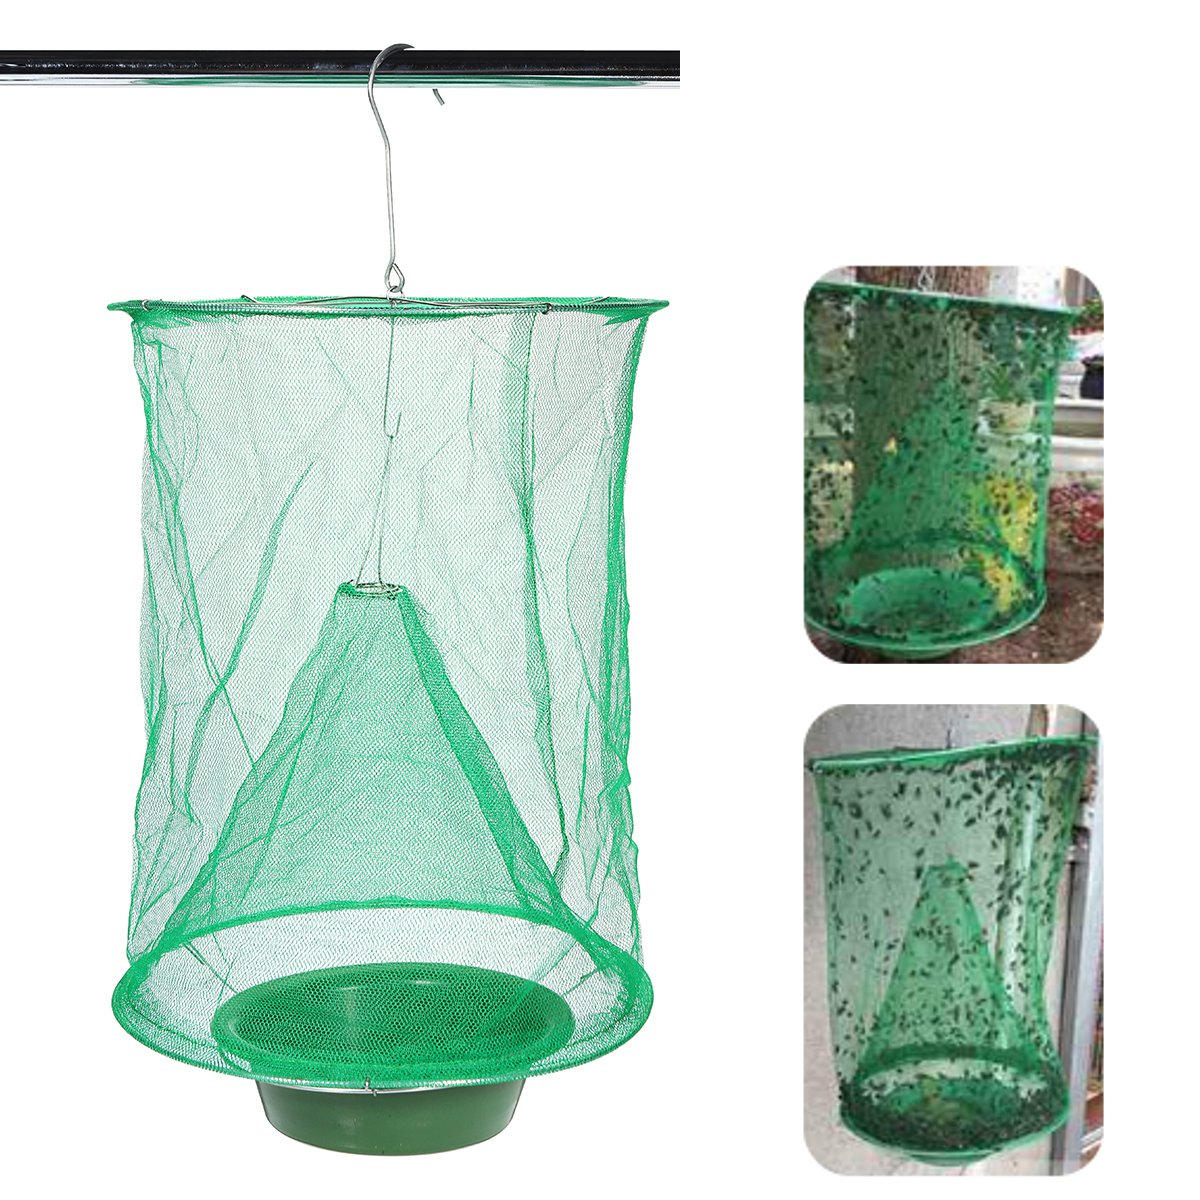 Fly Trap Insect Trap Net Gardening Hanging Folding Reusable Drosophila Insect Hog Catcher Killer